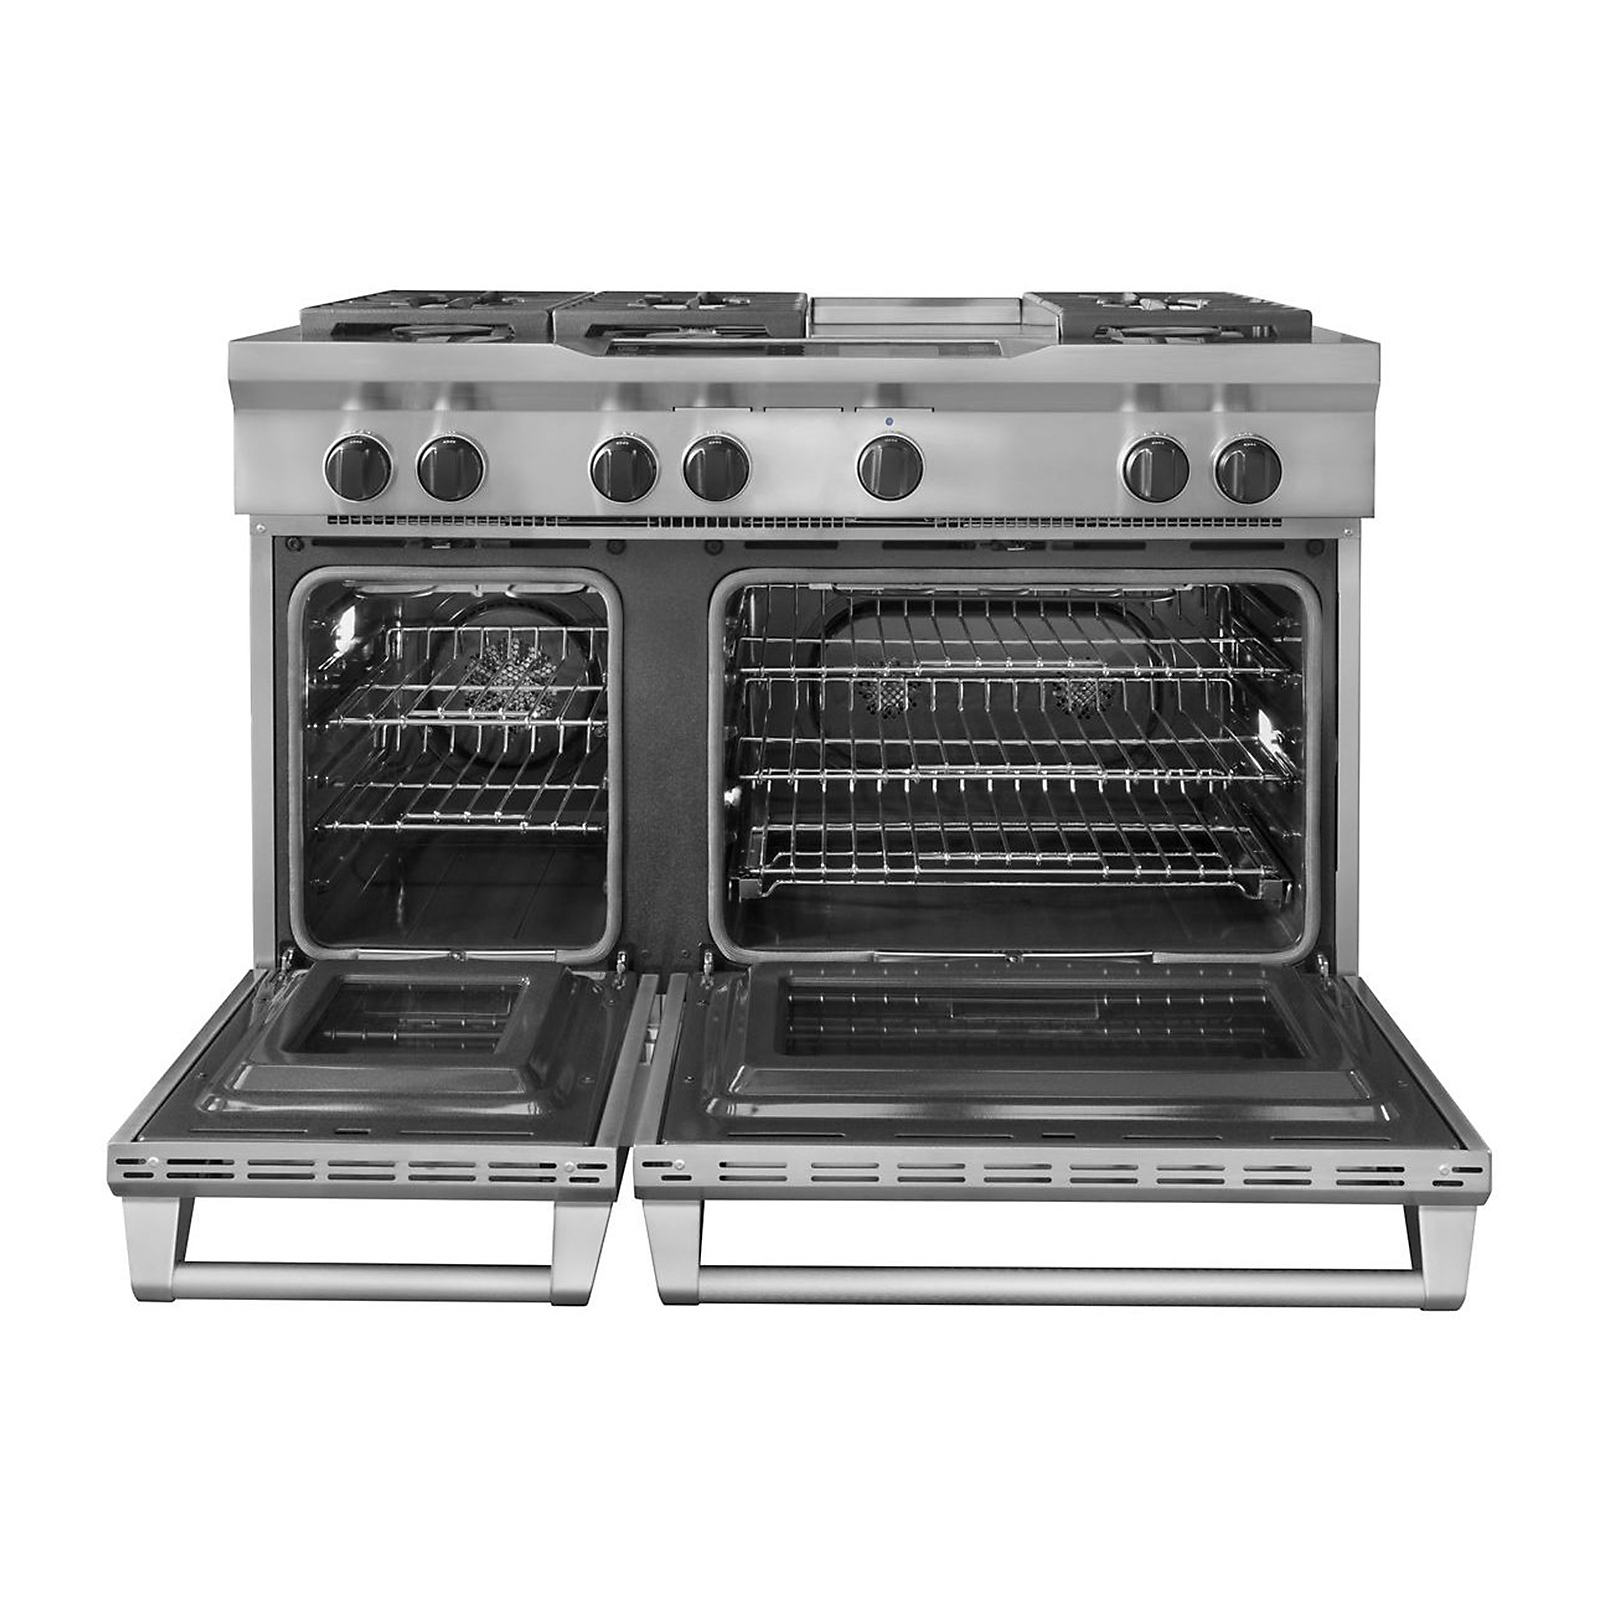 KitchenAid KDRU783VSS Pro-Style® 6.3 cu. ft. Dual Fuel Range w/ Griddle